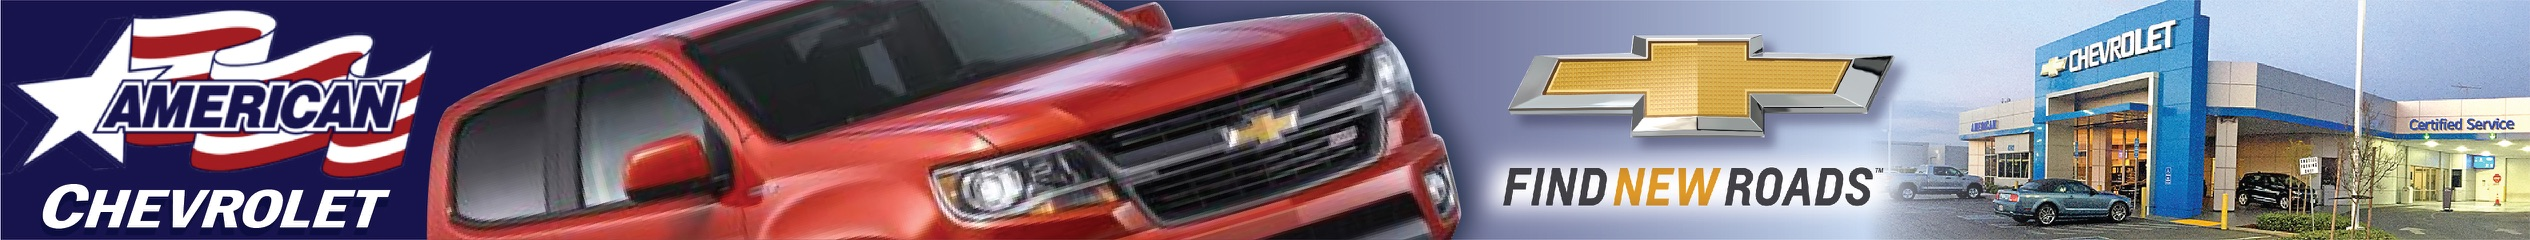 American Chevrolet - 2018 - 1 - Banner - Videos - Bottom